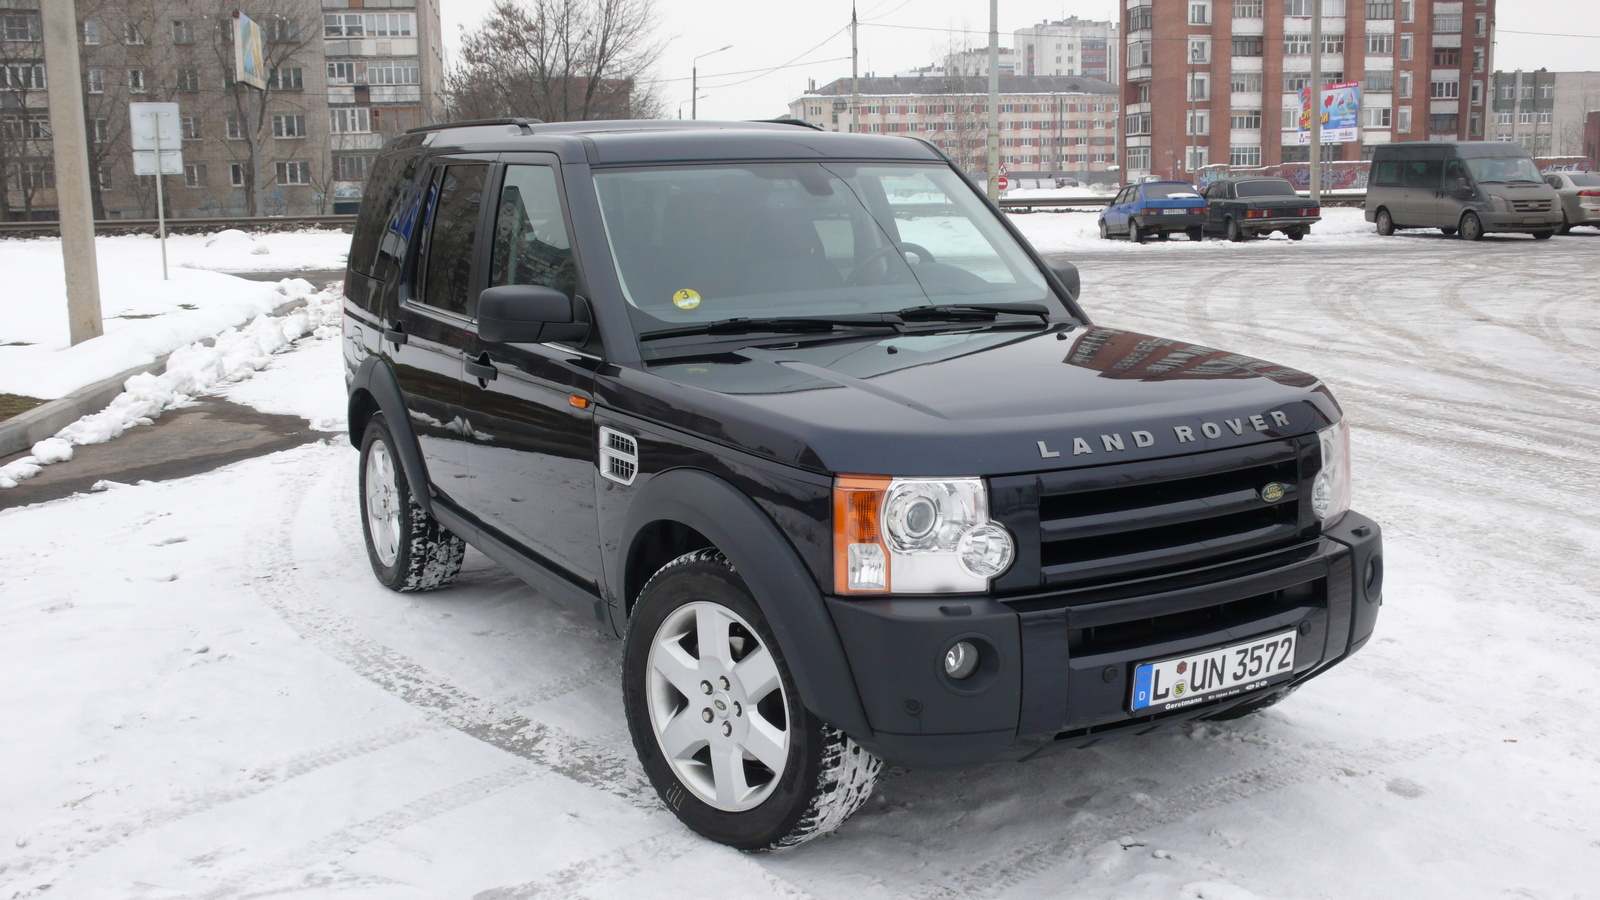 2004 Land Rover Discovery, 2007 Land Rover LR3 HSE picture, exterior